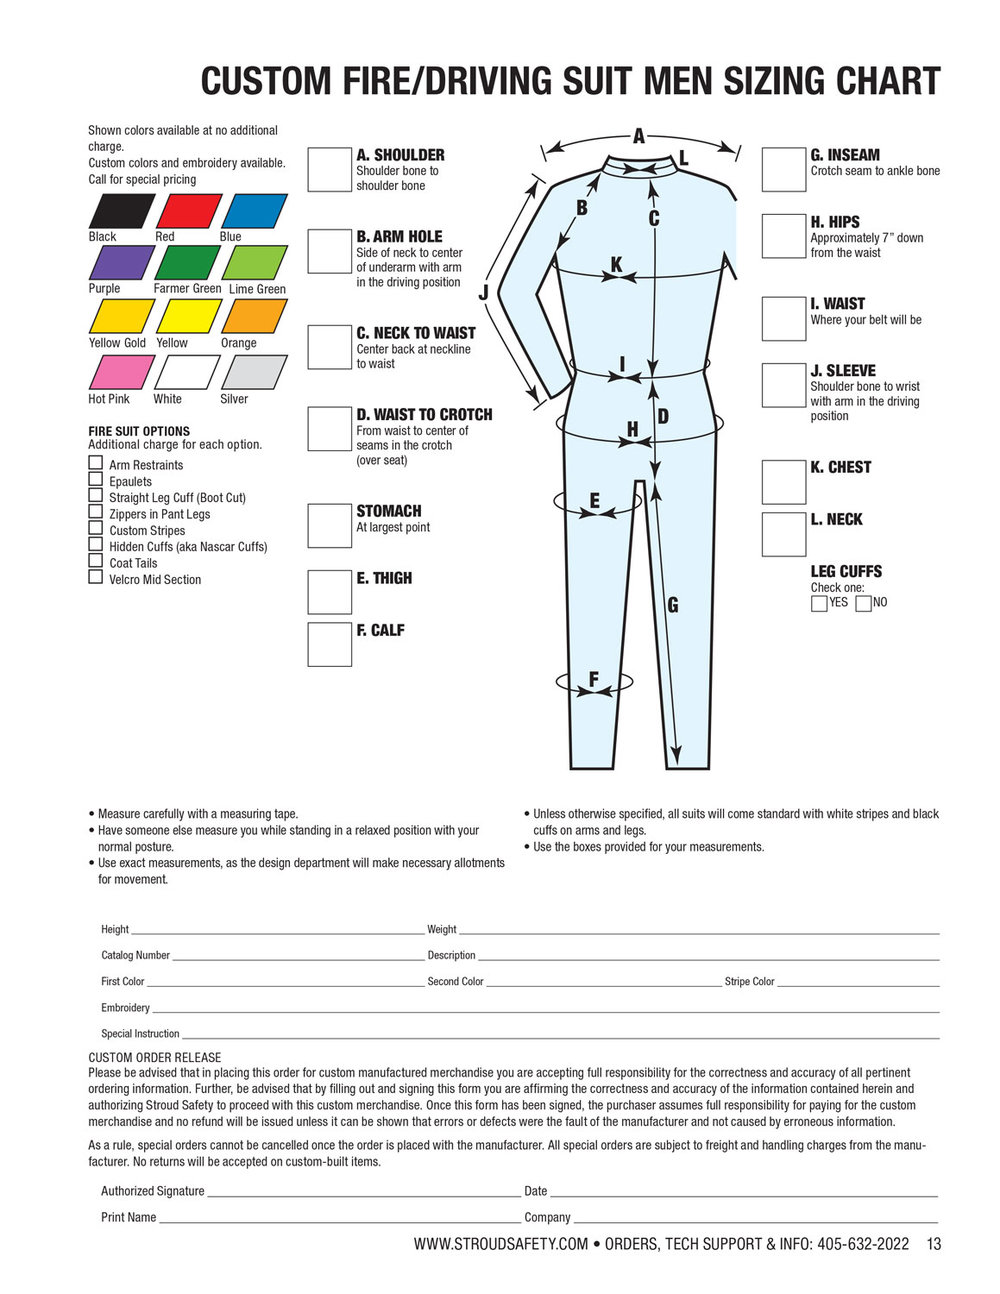 Download men's sizing form here.